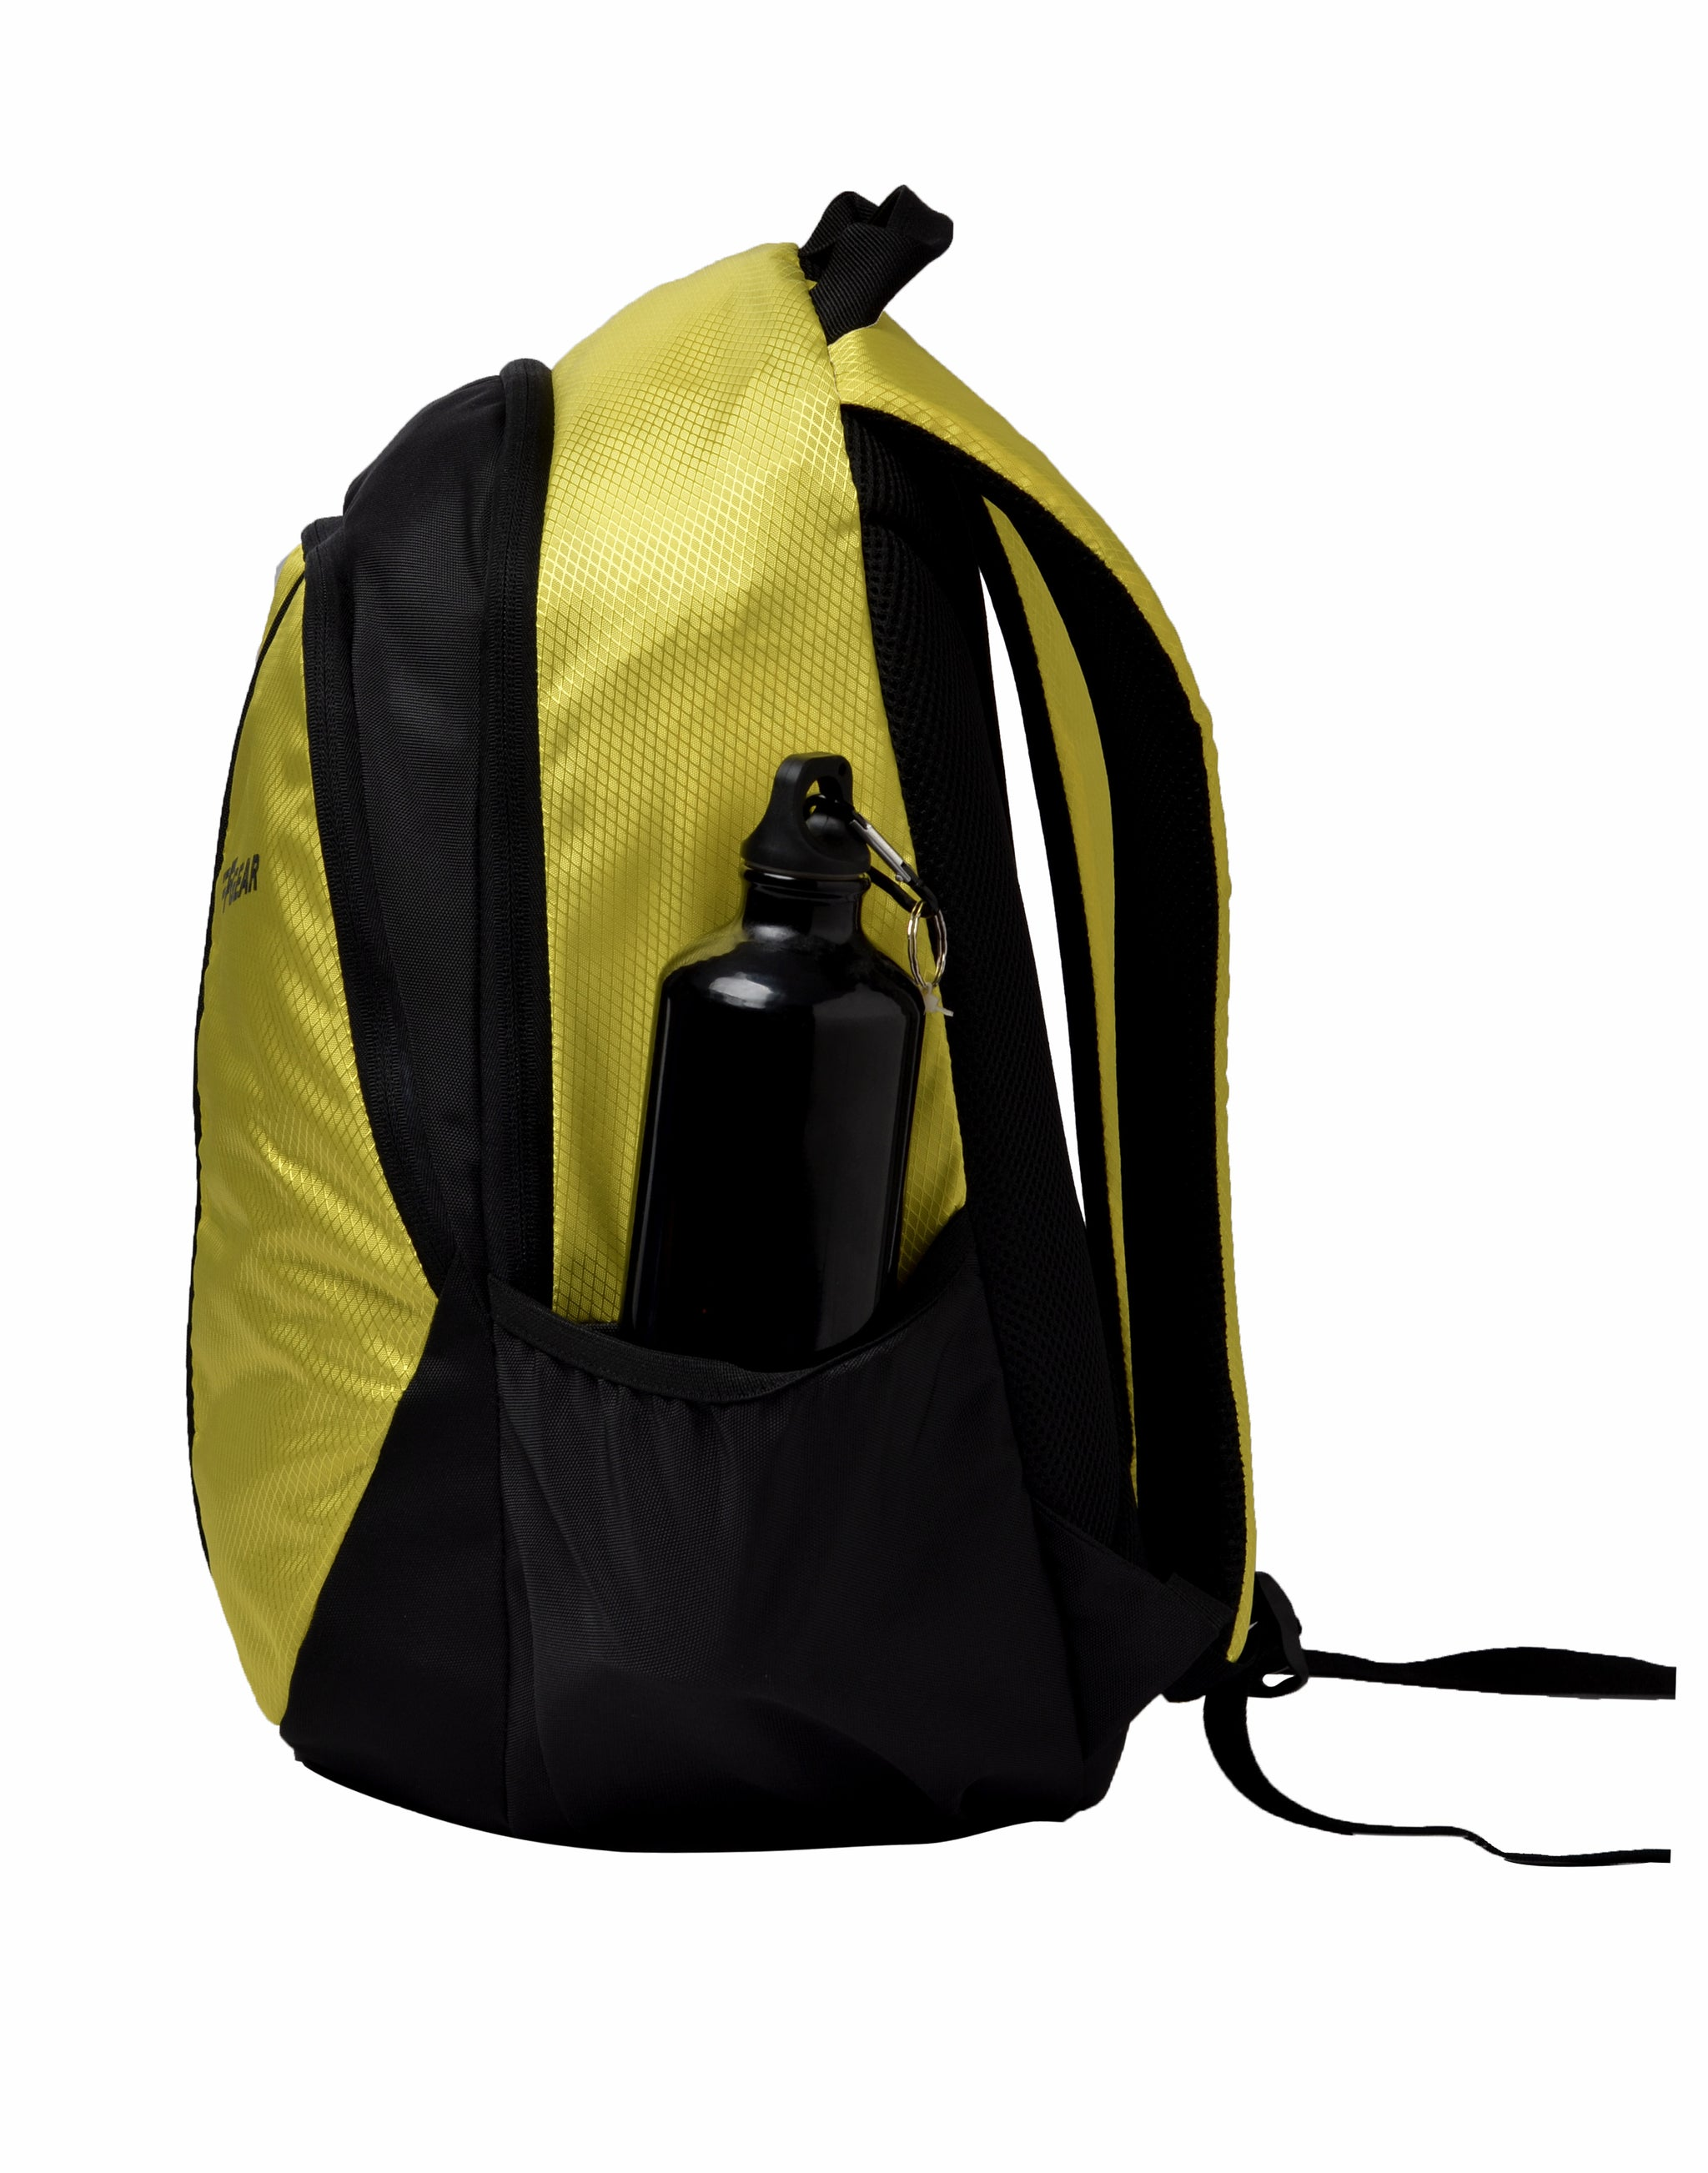 F Gear Paladin 26 Liters Backpack (Yellow Diamond, Black Guc)